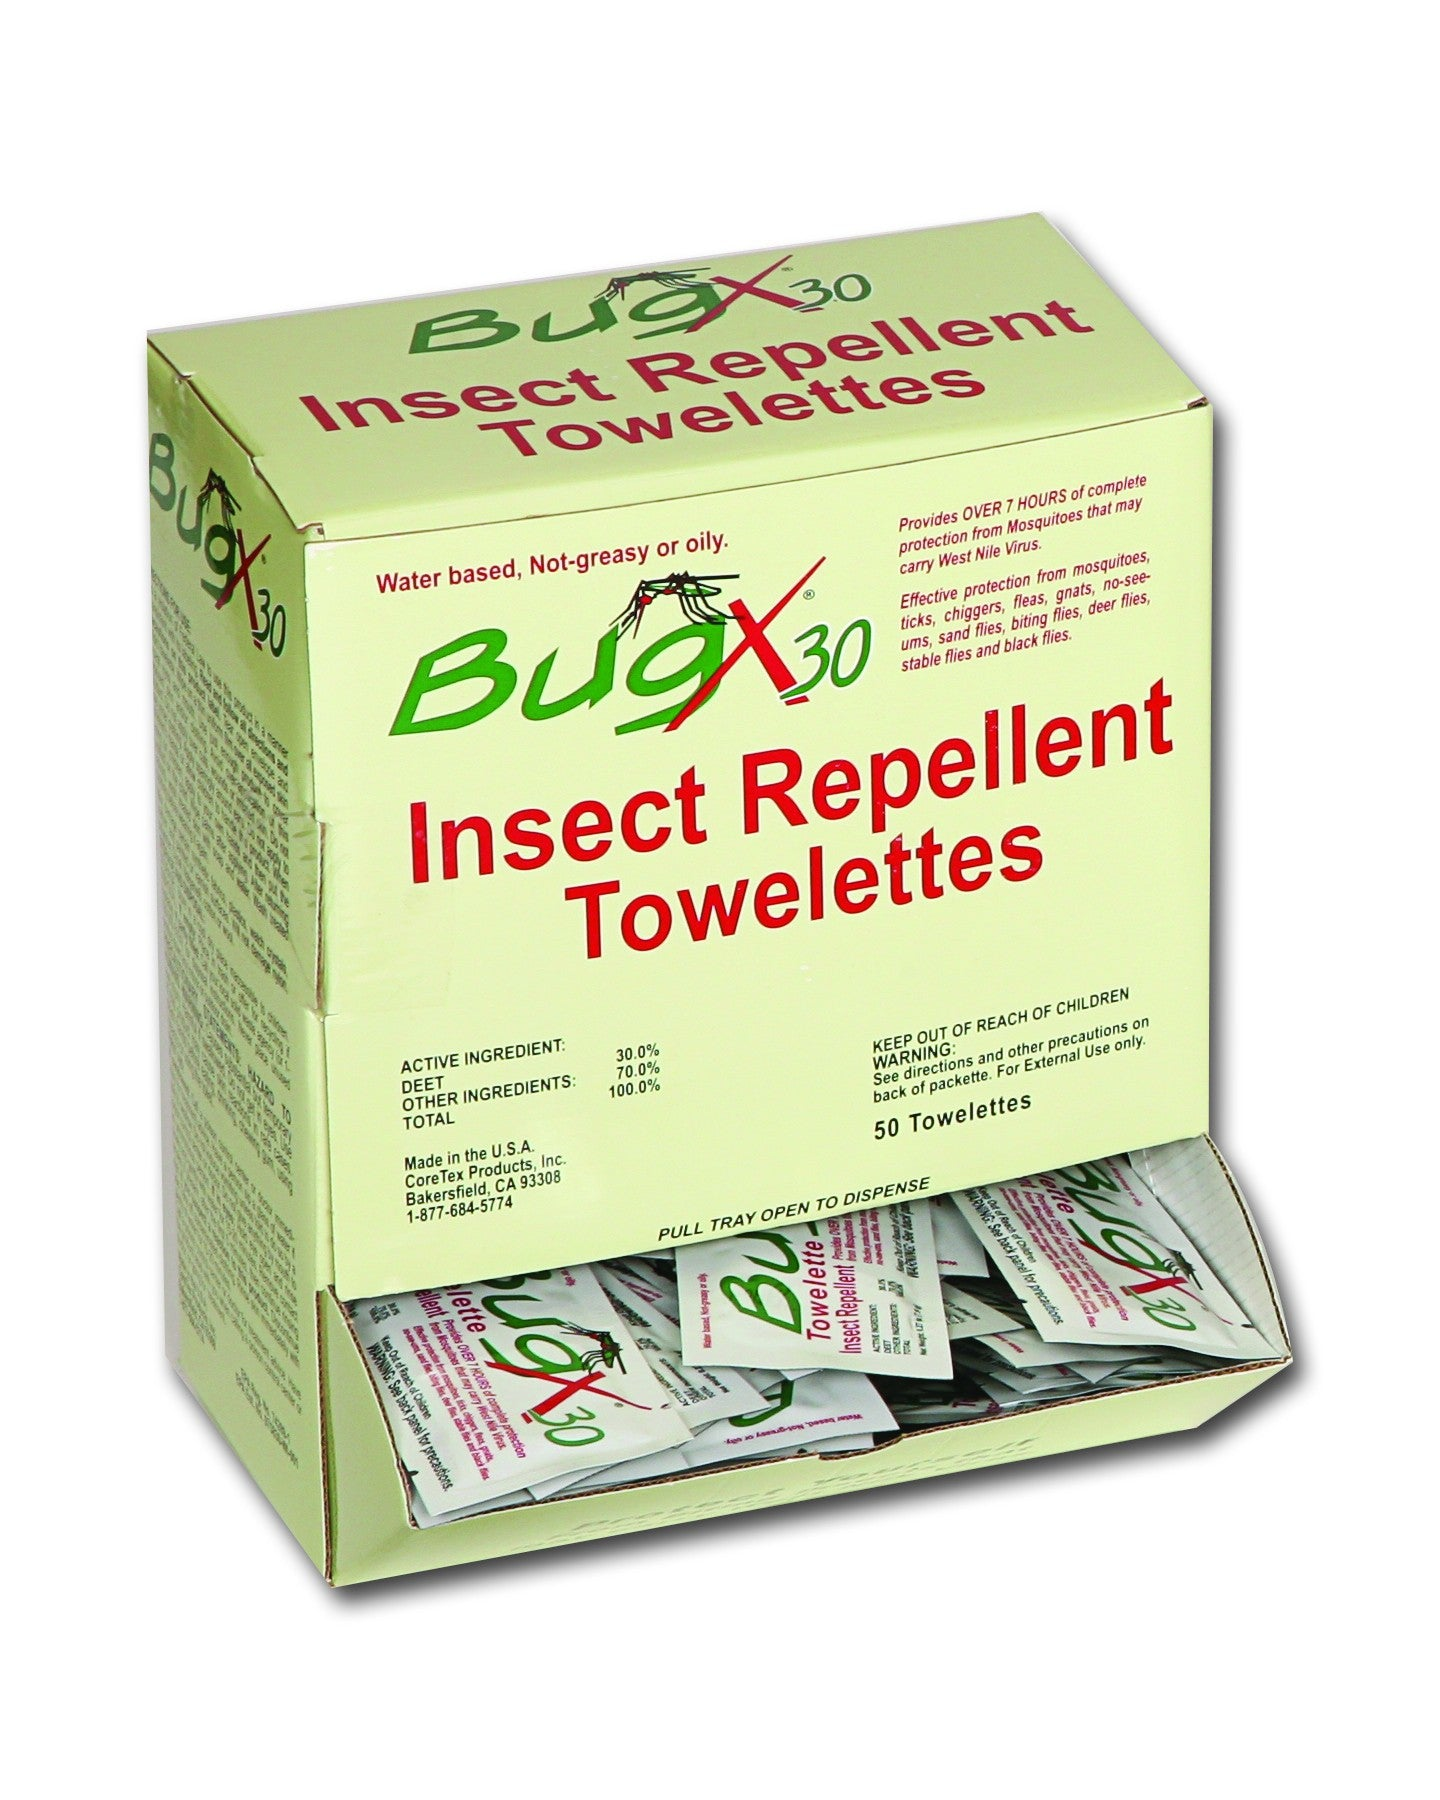 BugX30 Insect Repellent Wipes DEET, 50 Per Box - BS-FAK-18-750-1-FM